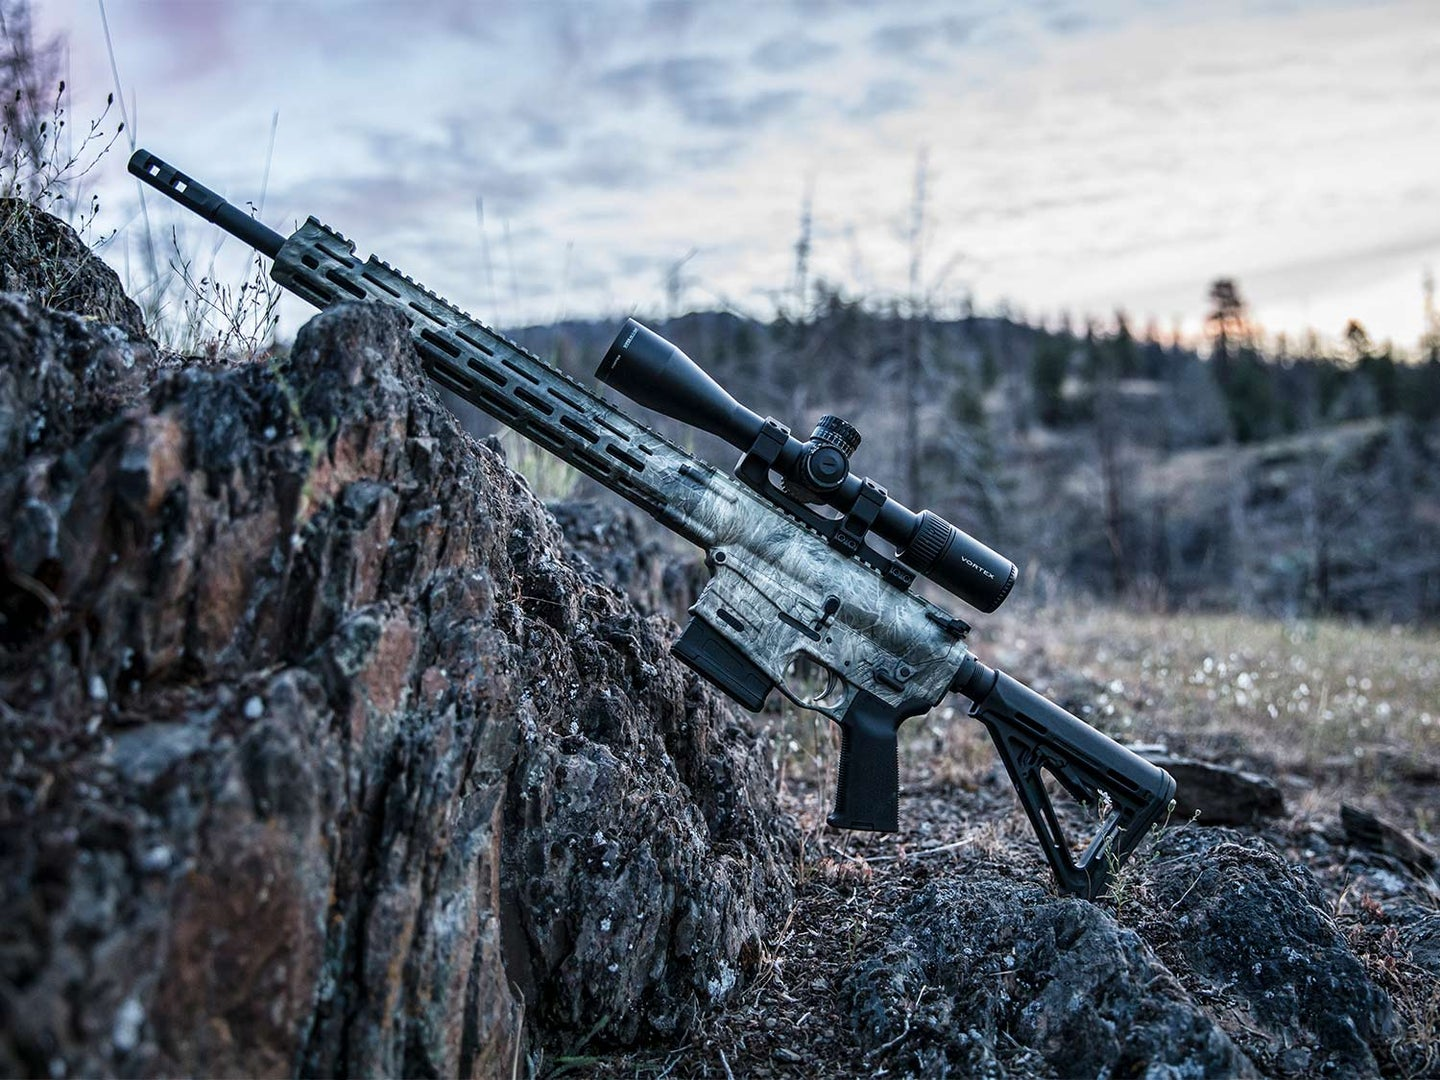 The Savage Arms MSR 10 Hunter Overwatch rifle leaning against a small rock formation in the wilderness.